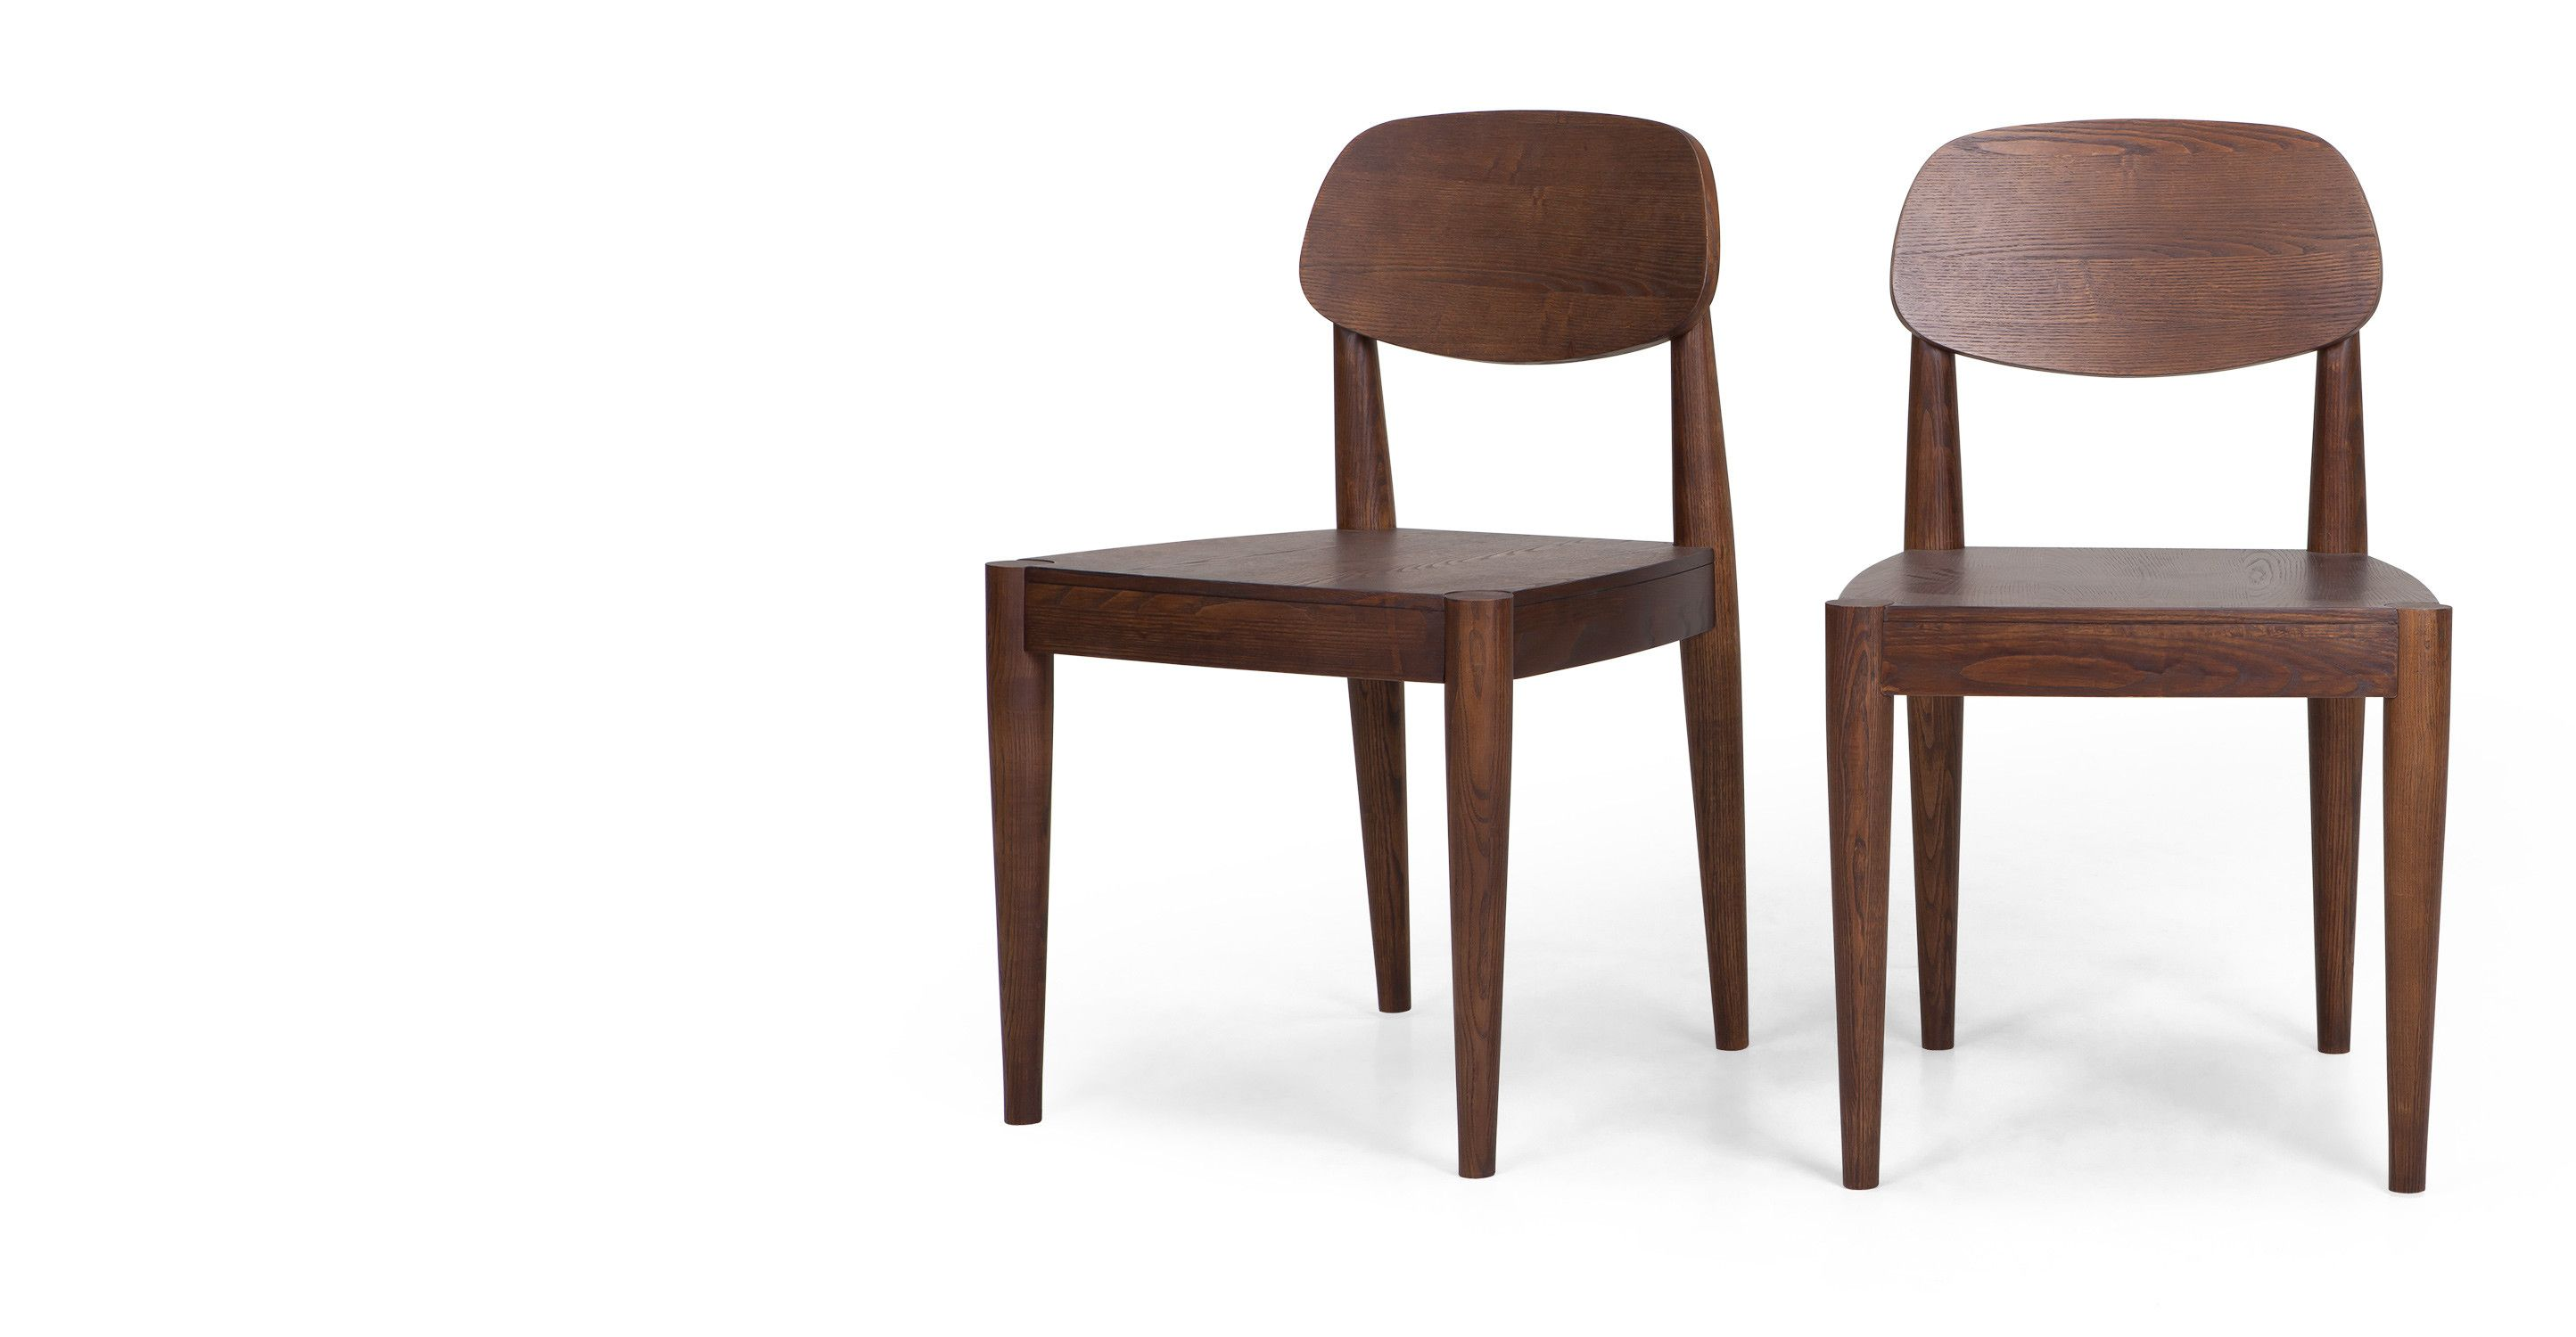 Pair Of Joseph Dining Chairs In Dark Stain Ash Made Com Dining Chairs Dining Chairs For Sale Retro Chair [ 1500 x 2889 Pixel ]